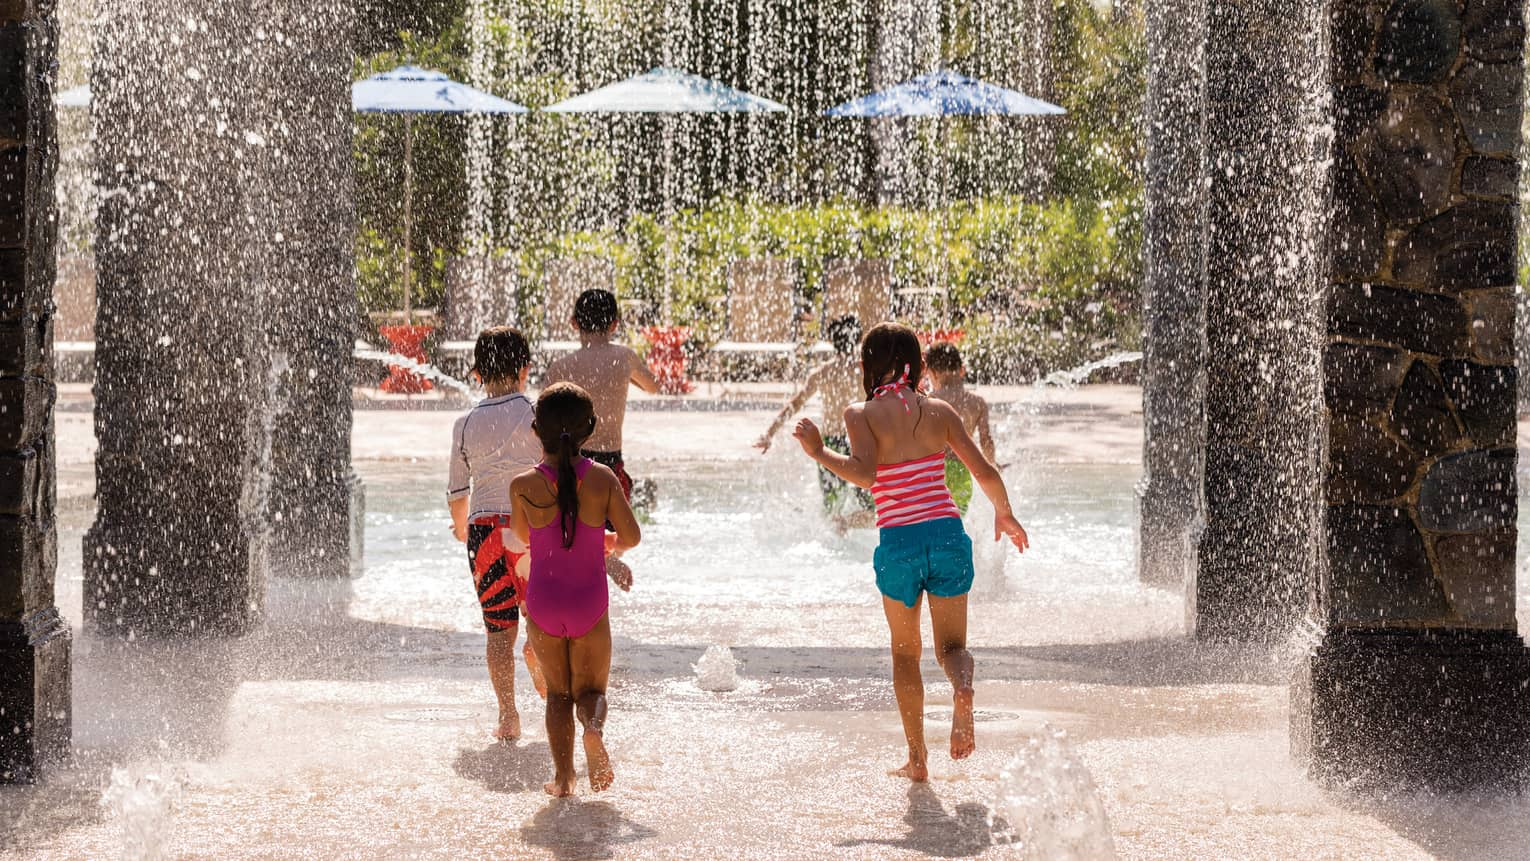 Children run past pillars, splash under falling water on Splash Zone water park